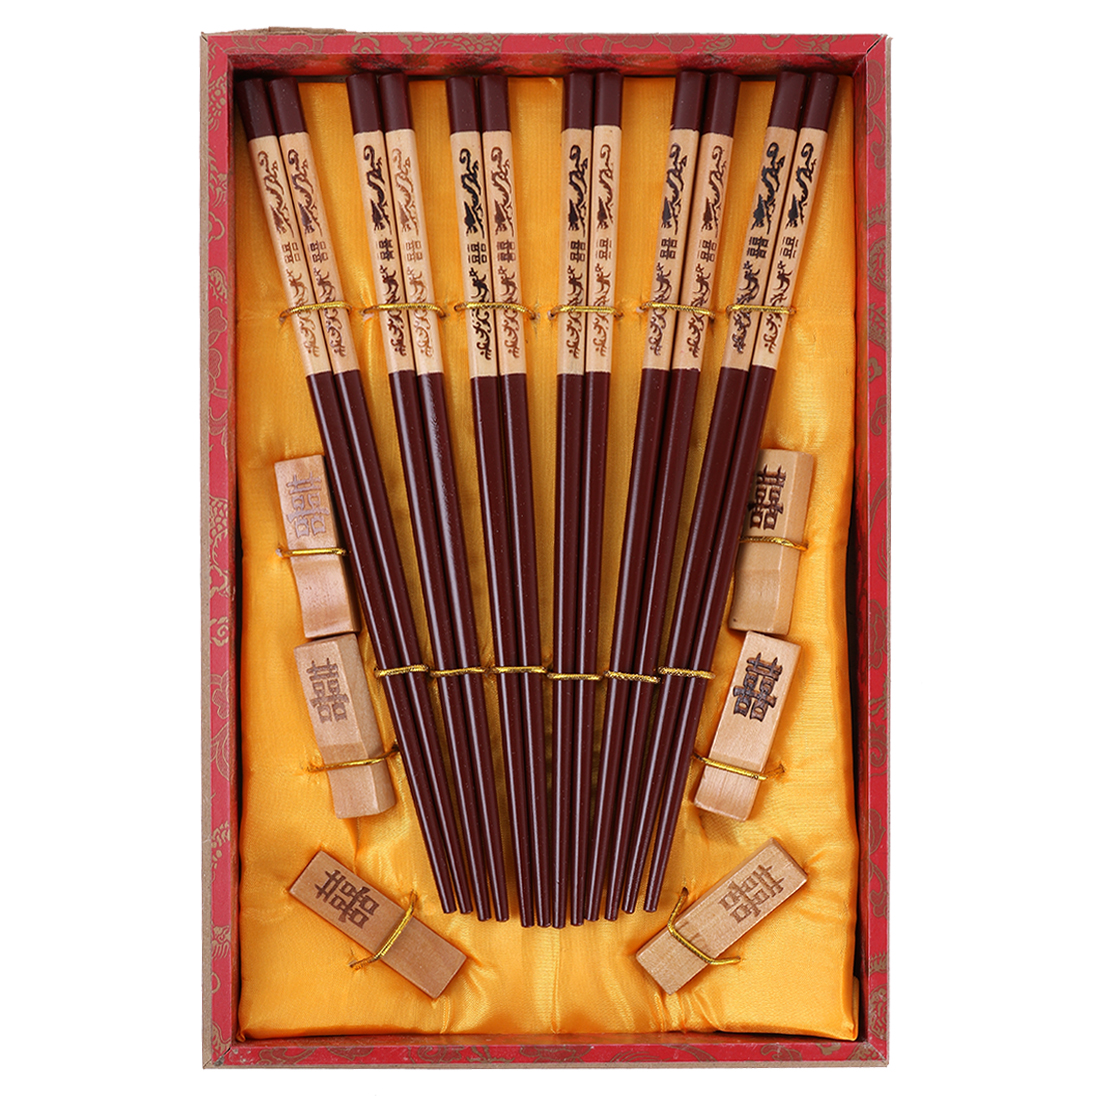 Casa-J Chinese Handmade Vintage Wood Chopsticks Set In Gift Box